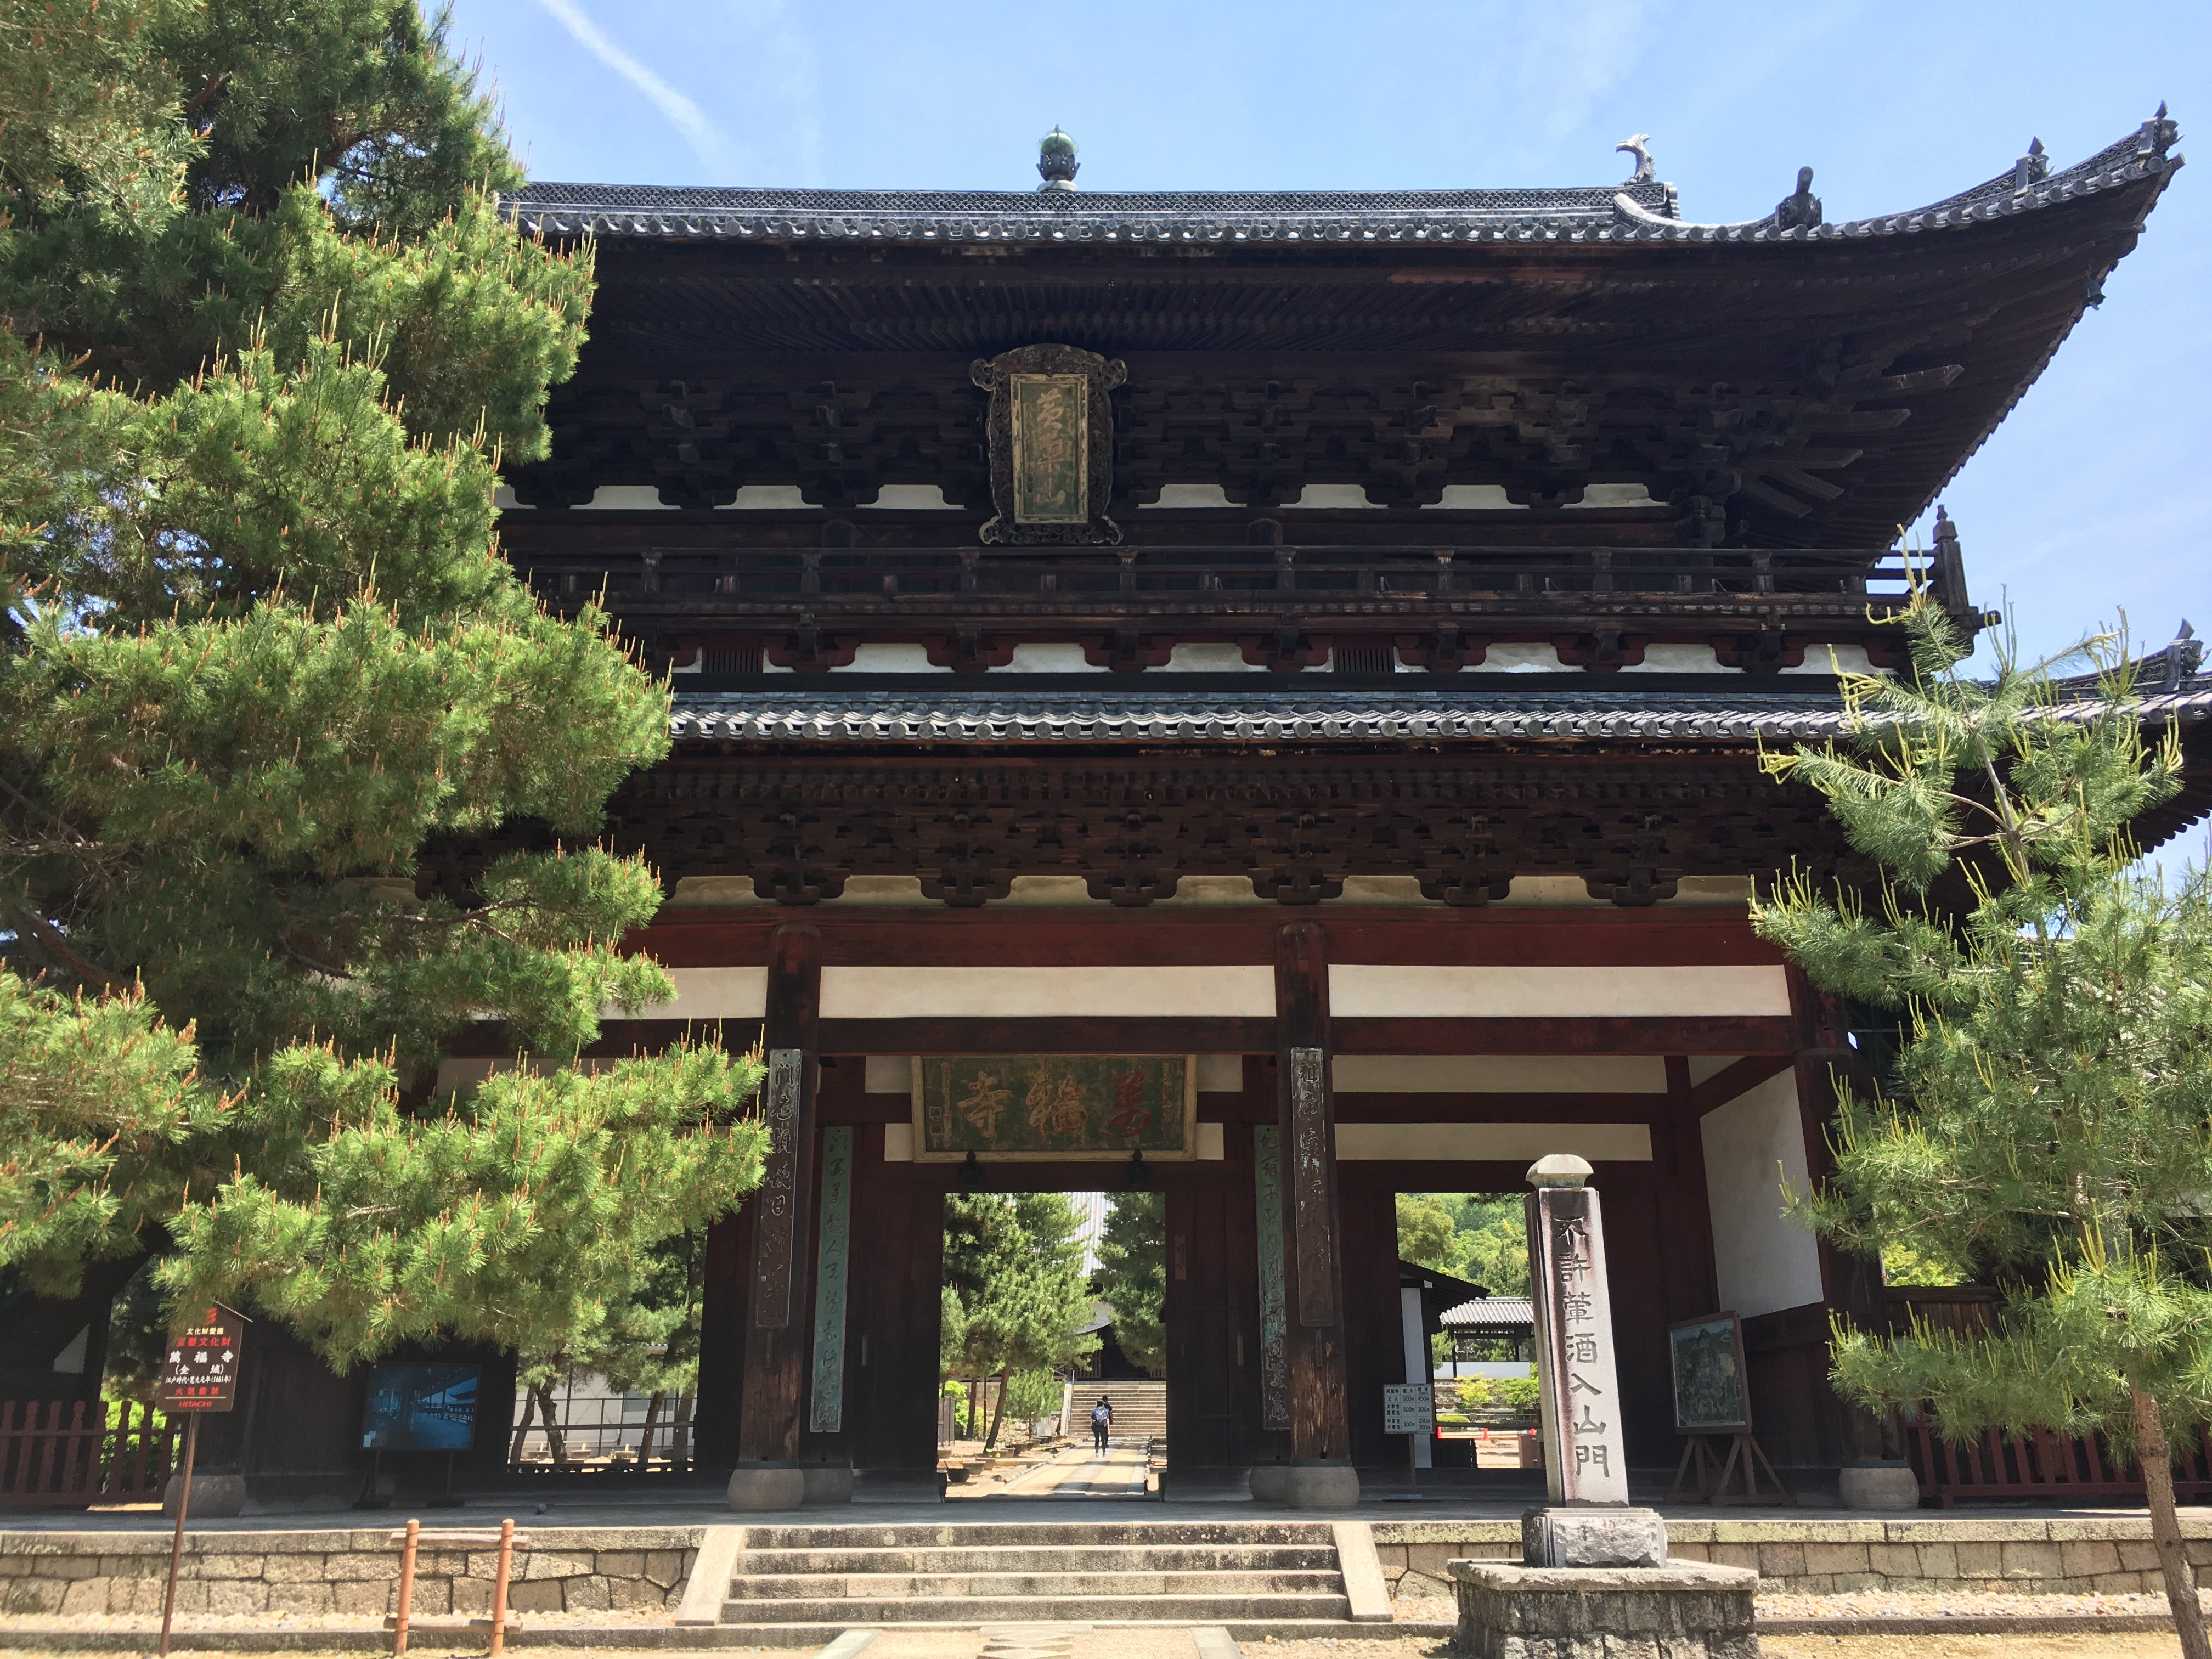 Sanmon gate of Manpkuku-ji Temple